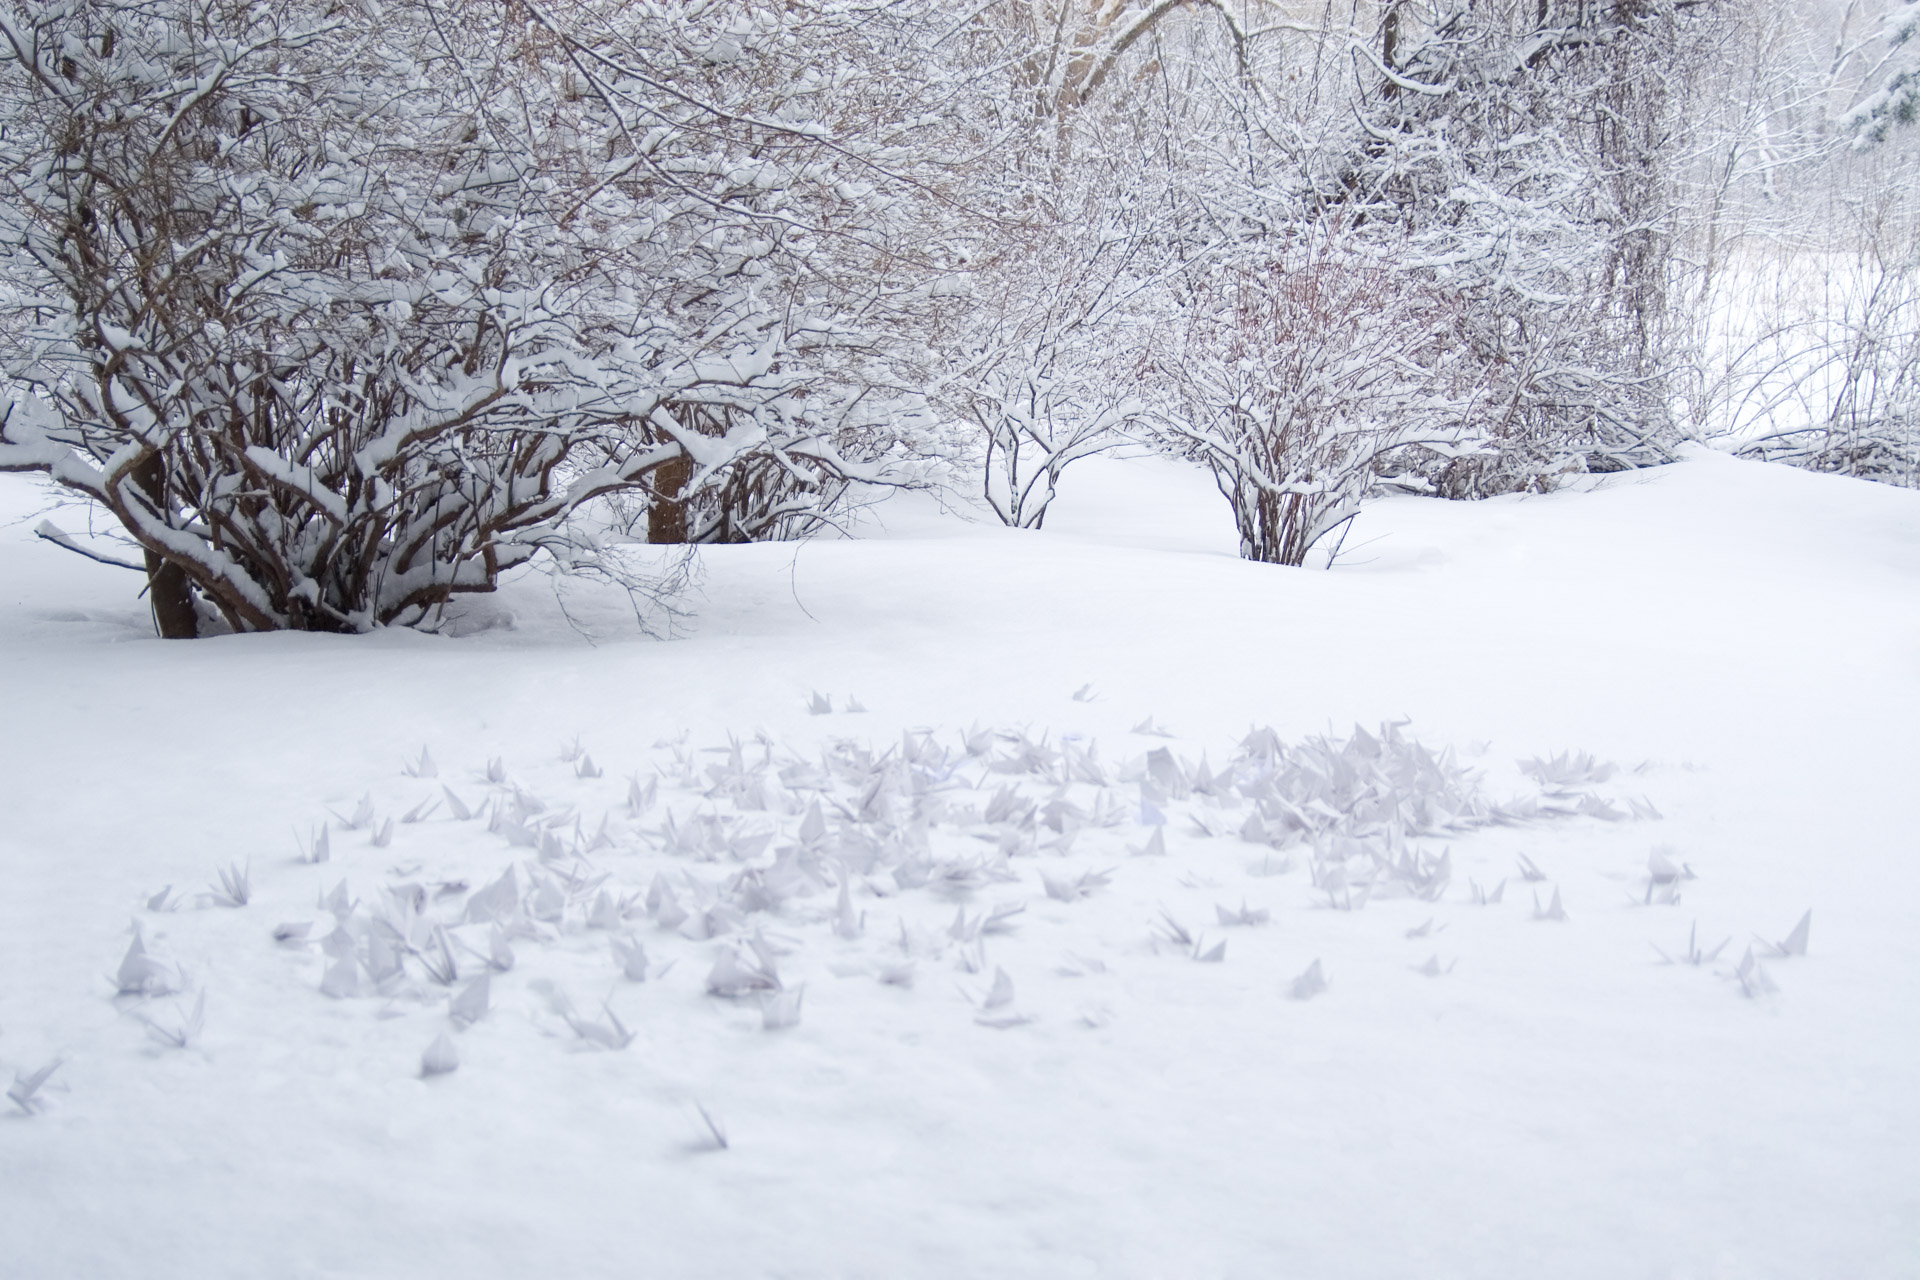 White paper cranes scattered in the snow.